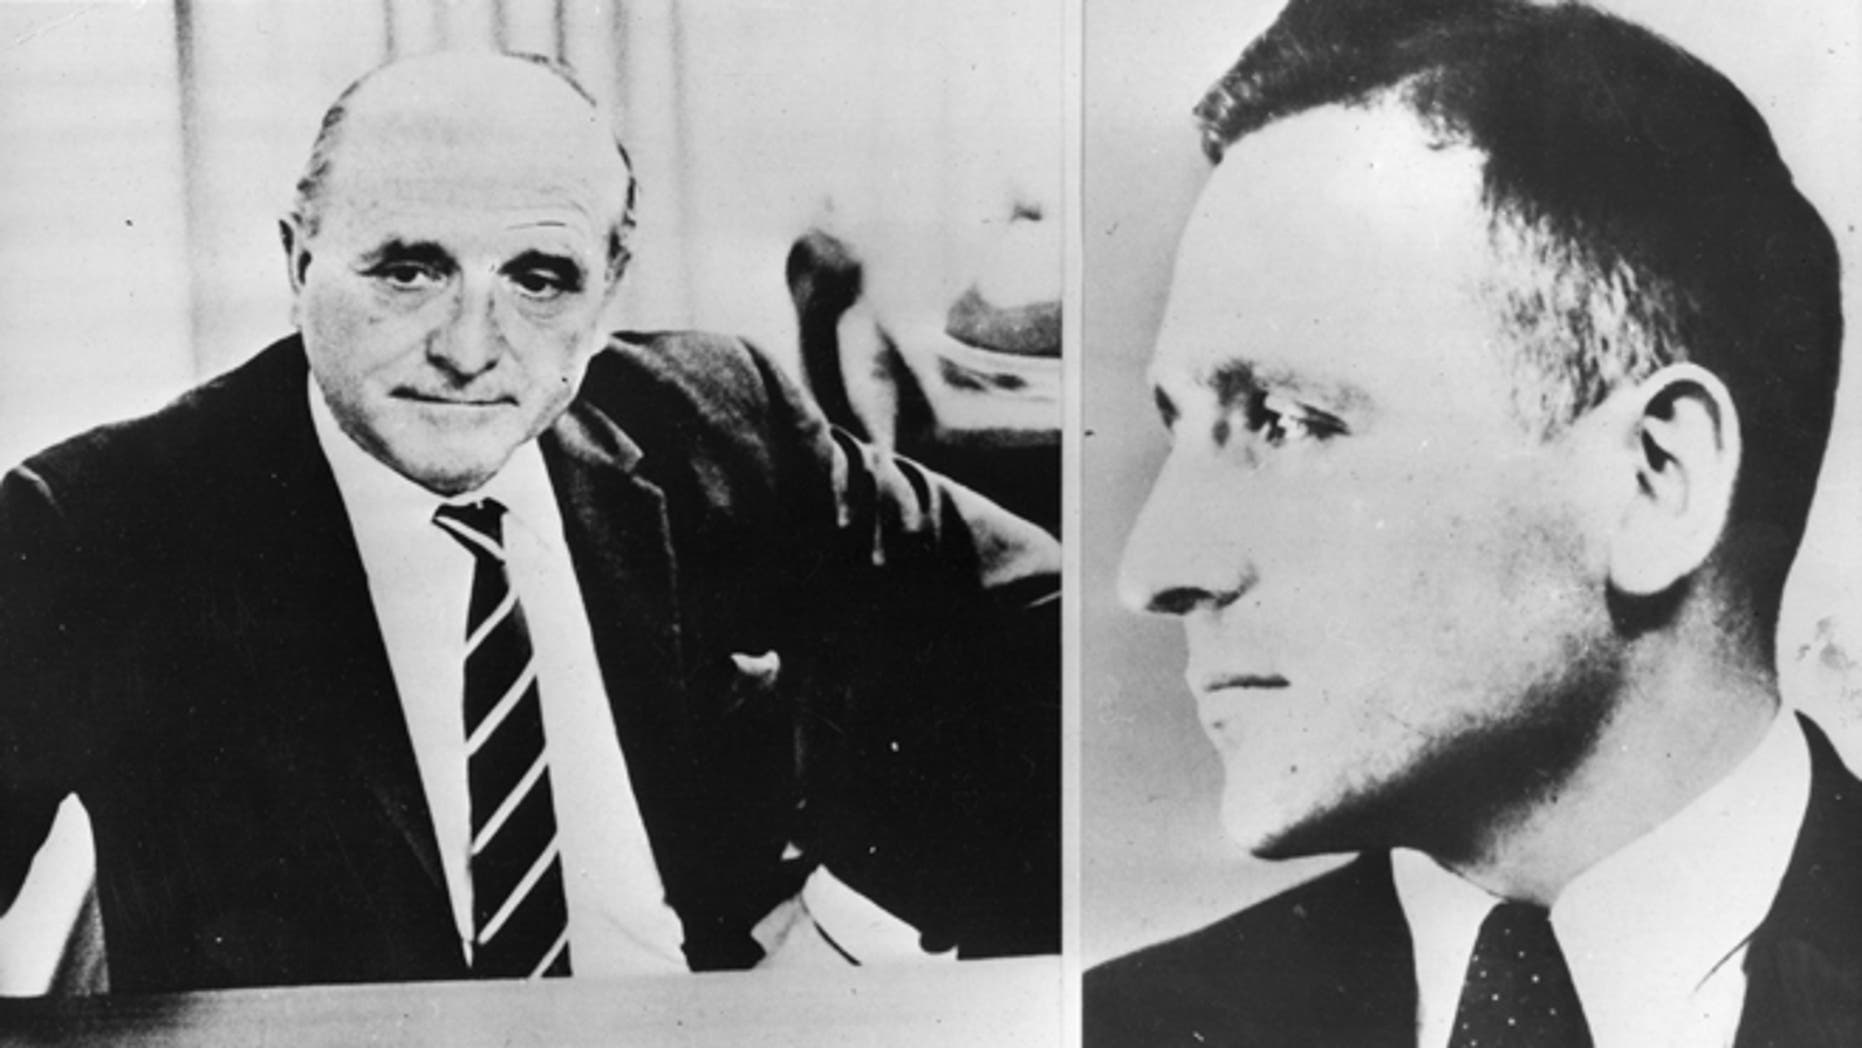 """Klaus Barbie, a Gestapo officer known to history by the more brutal moniker """"the Butcher of Lyon,"""" fled to Latin America in the mid-1940s with the help of western intelligence agencies following the fall of the Third Reich. (Photo by Keystone/Getty Images)"""